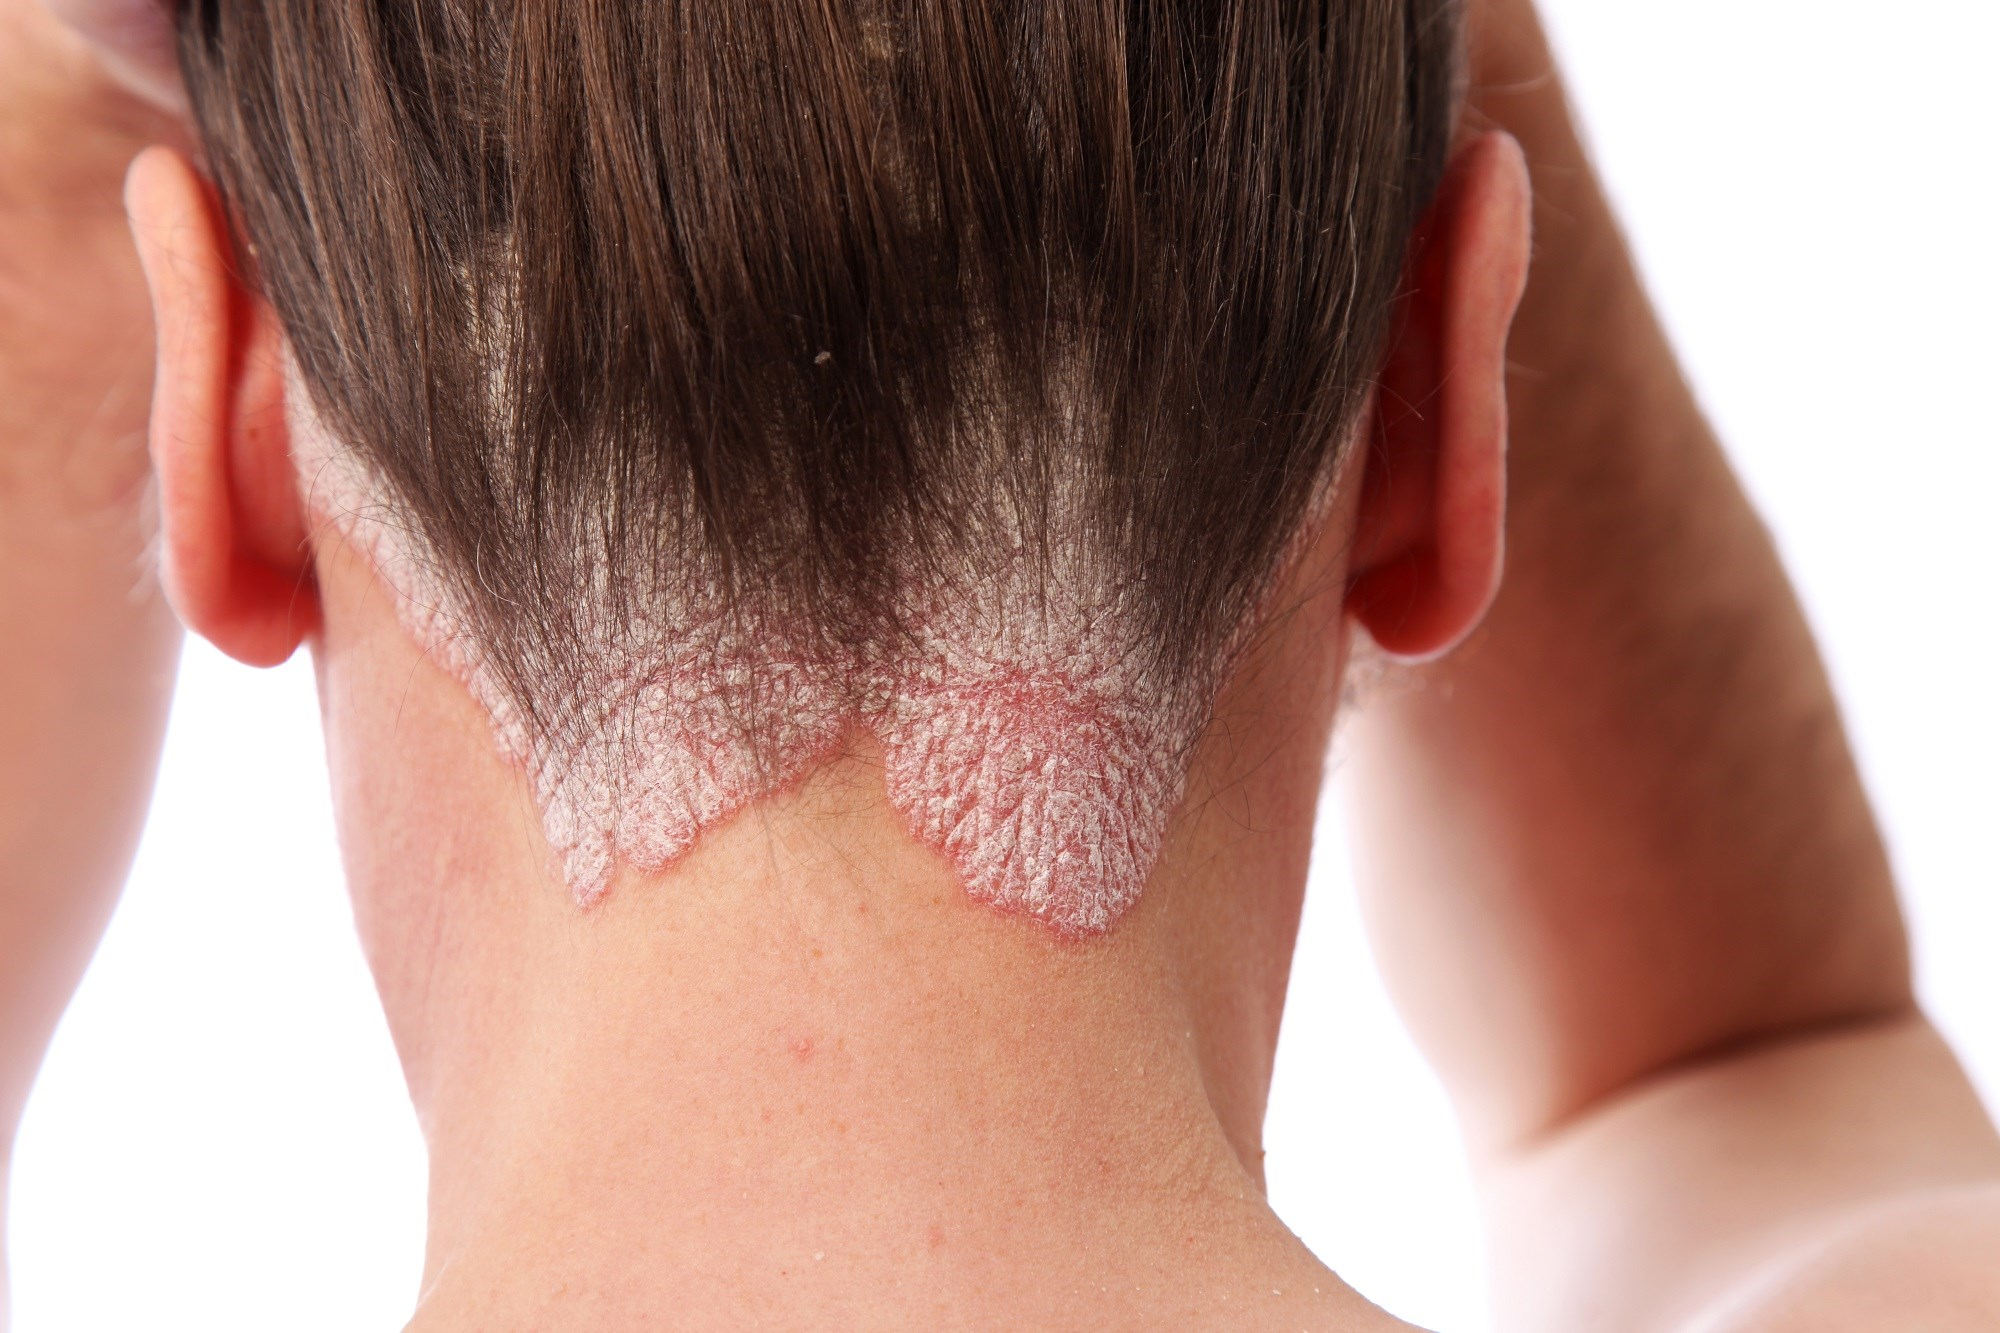 Classification of Psoriasis Severity Depends on Definition